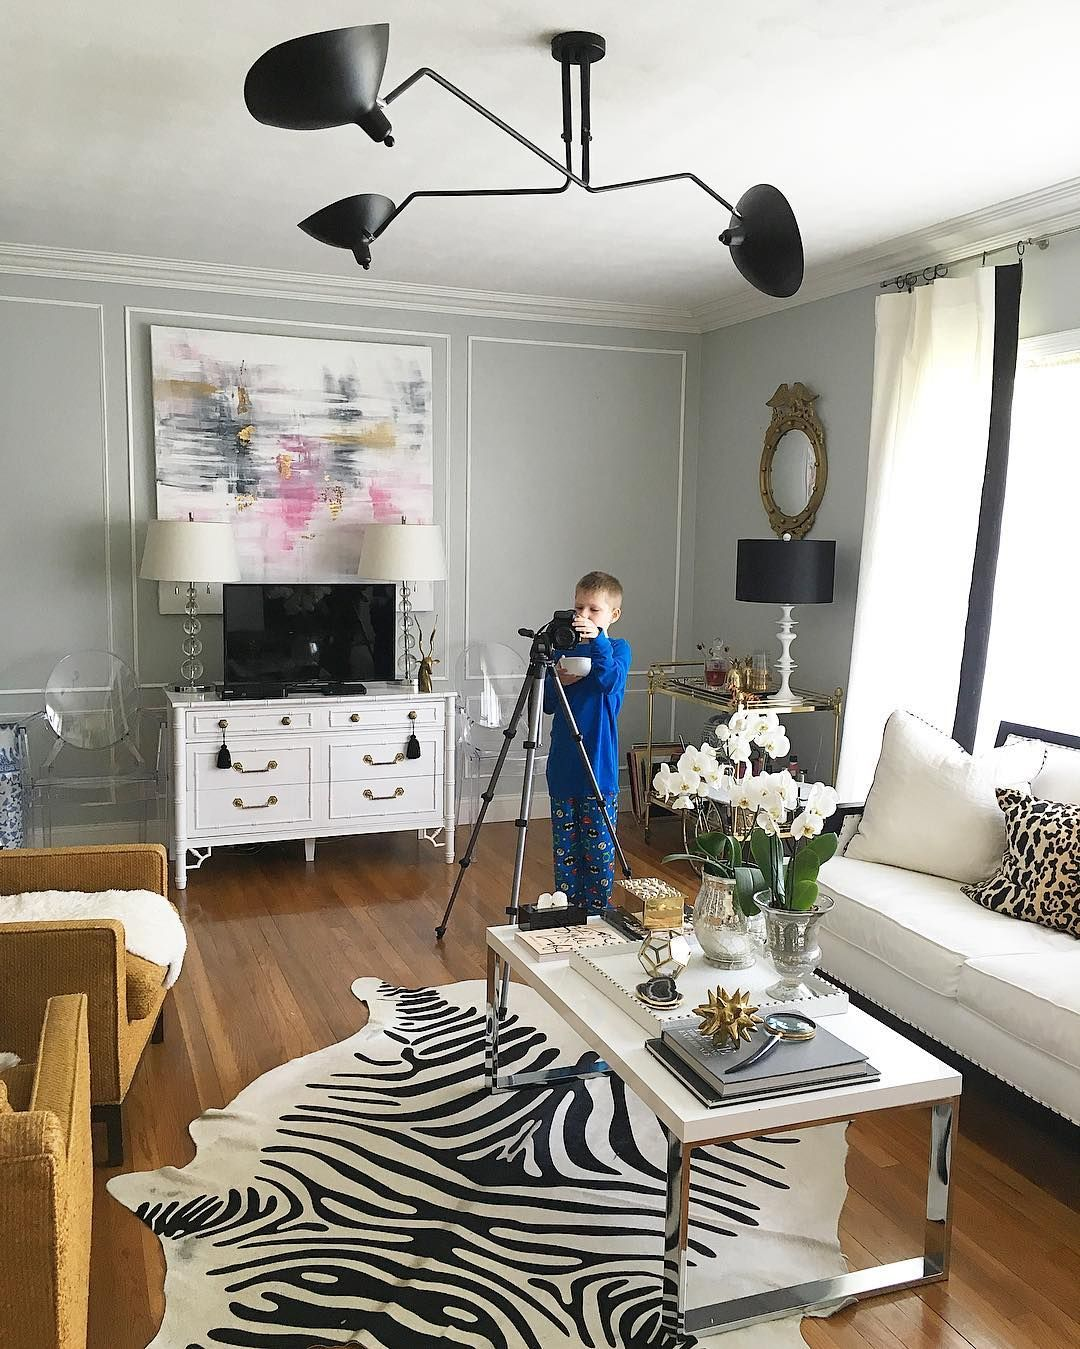 Design Blogger • Interior Stylist • Founder Of Bliss At Home Blog